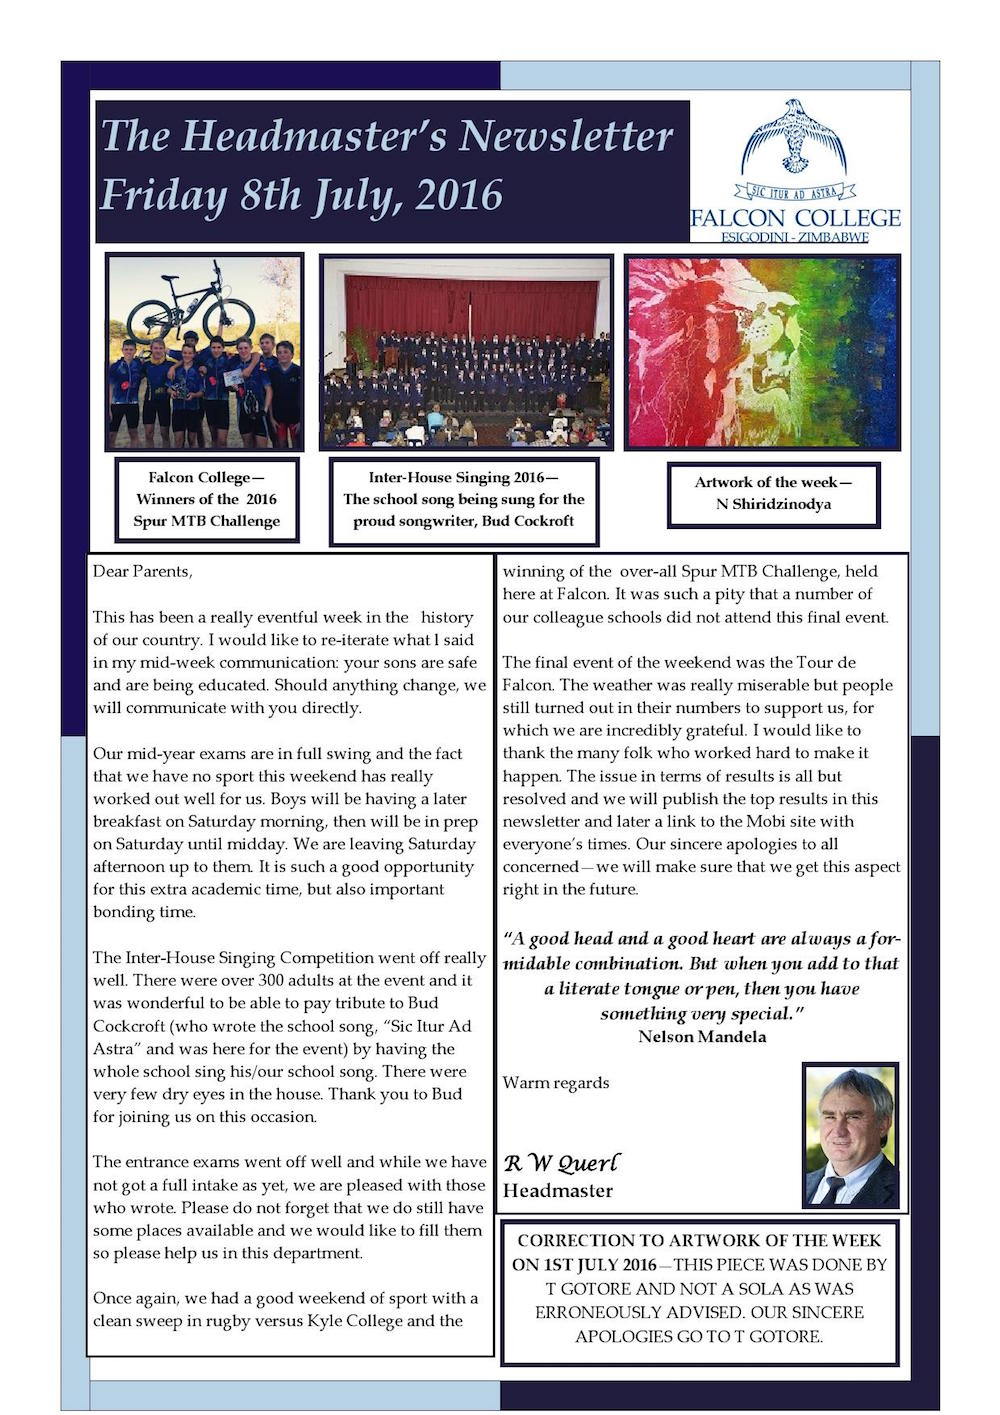 Headmaster's Newsletter Friday 8th July 2016 edited_000001